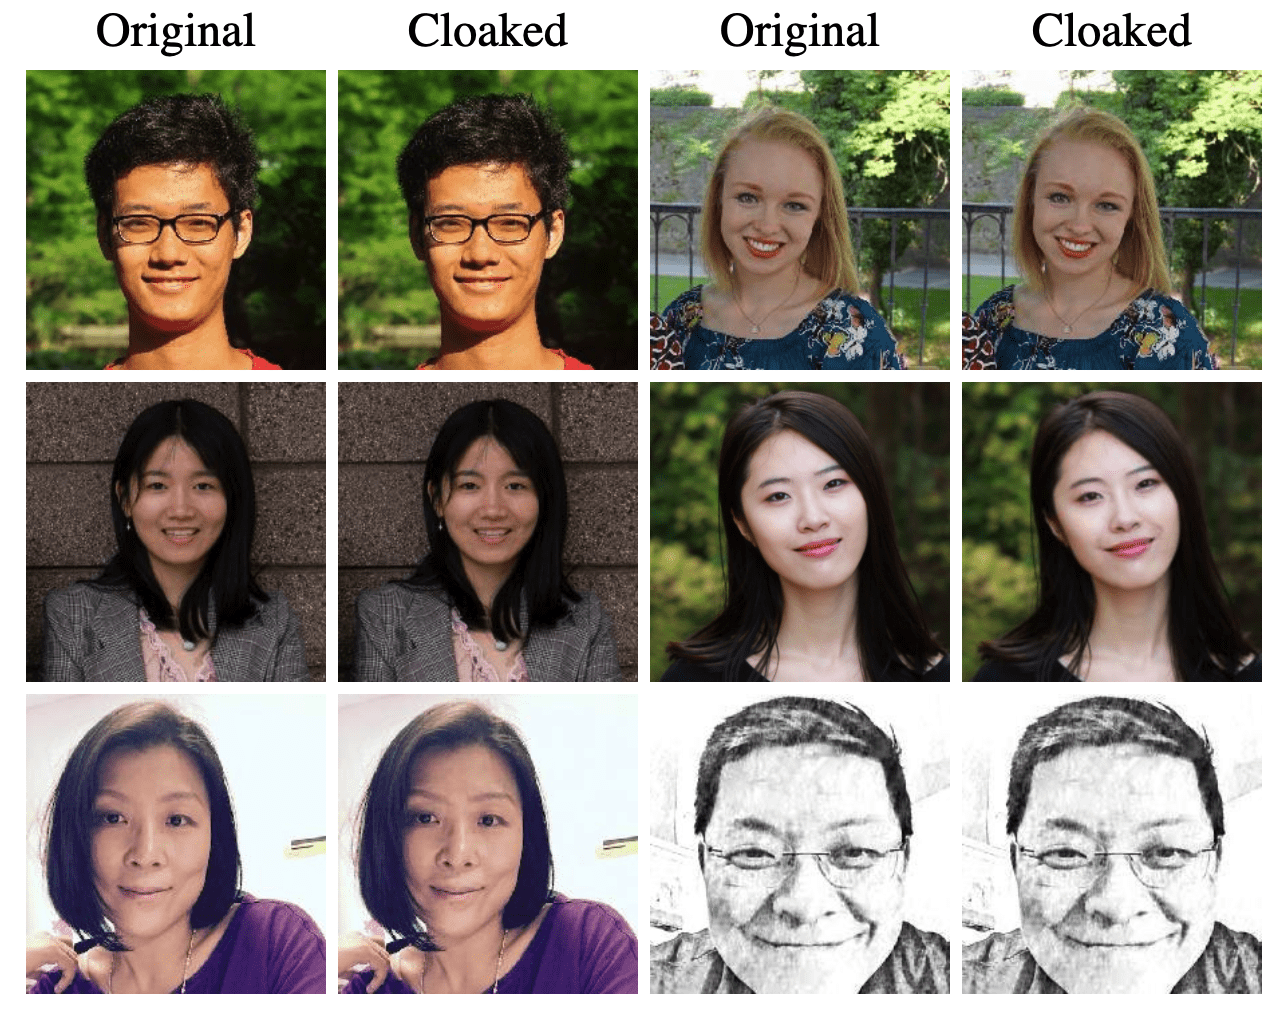 Original and cloaked headshots of the study authors demonstrate how the modifications introduced by Fawkes are invisible to human viewers while disrupting facial recognition software. Image courtesy of the SAND Lab at UChicago